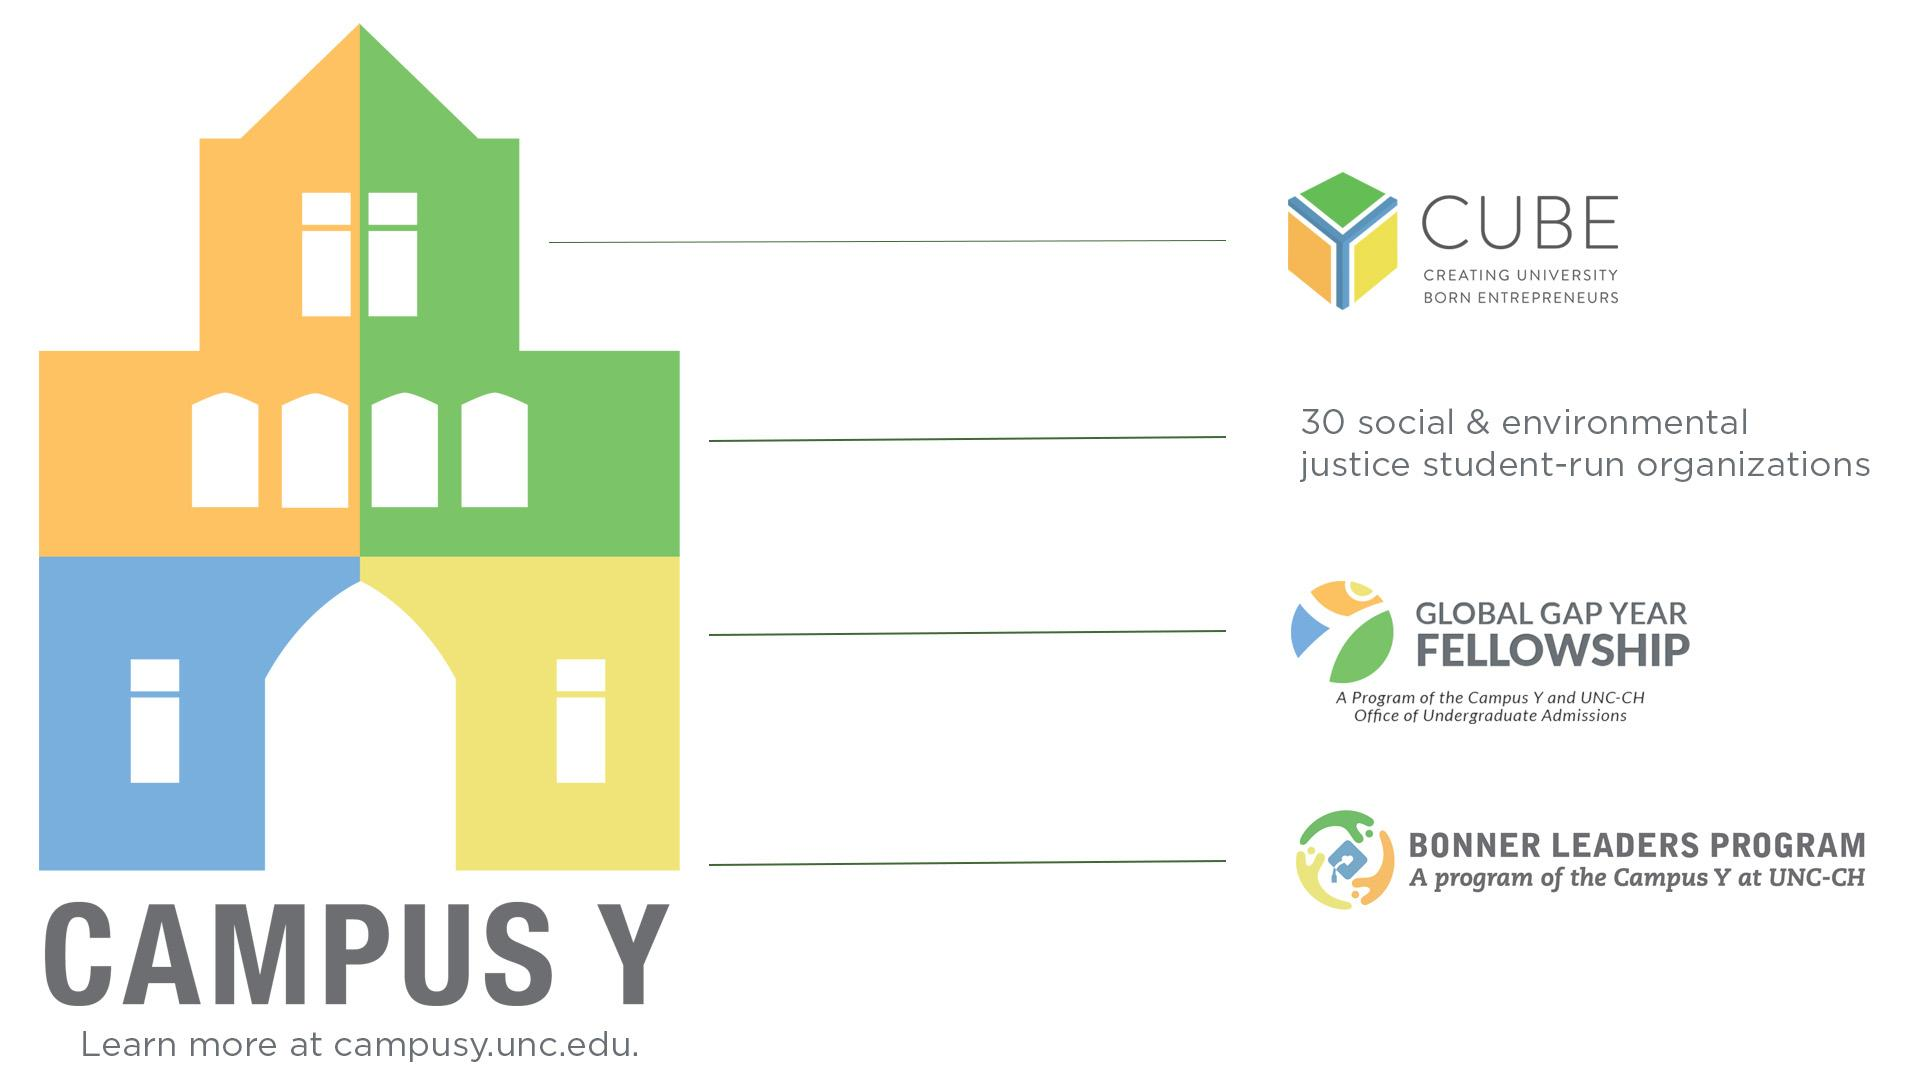 The Campus Y is home to The Bonner Leaders Program, The Global Gap Year Fellowship, CUBE, and 30 student-run social justice organizations.